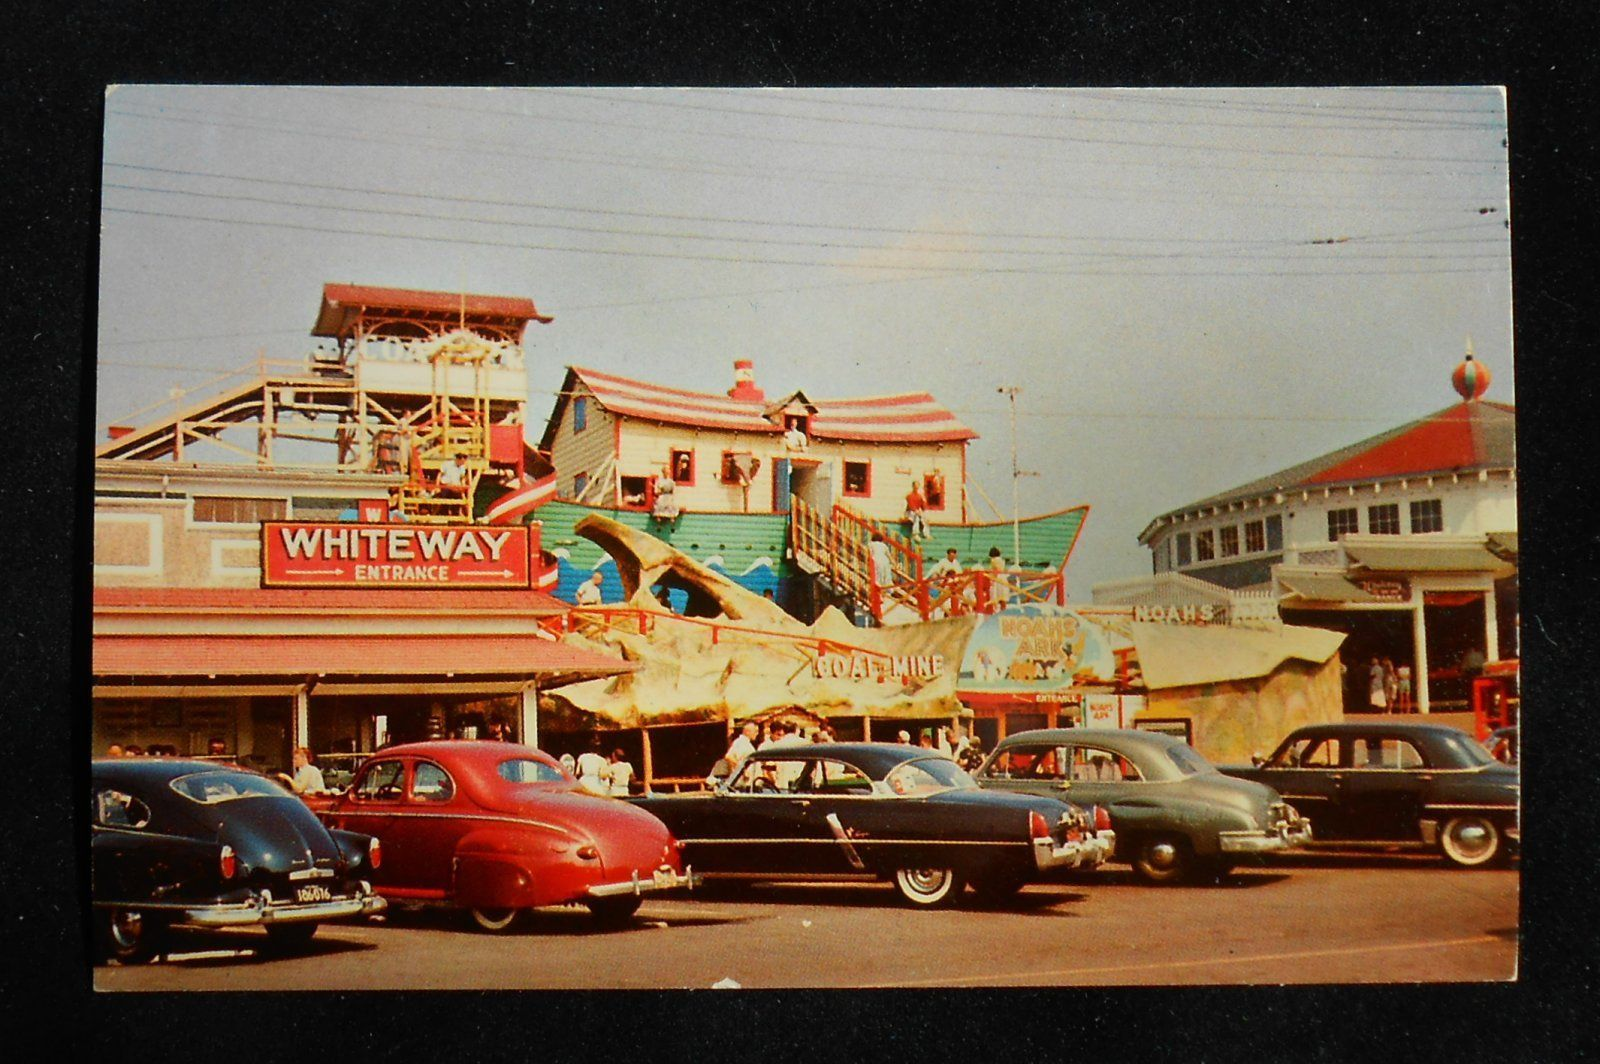 1950s Noah S Ark Coal Mine Amusement Park Rides Old Cars Old Orchard Beach Me Pc Ebay Old Orchard Beach Amusement Park Rides Old Orchard